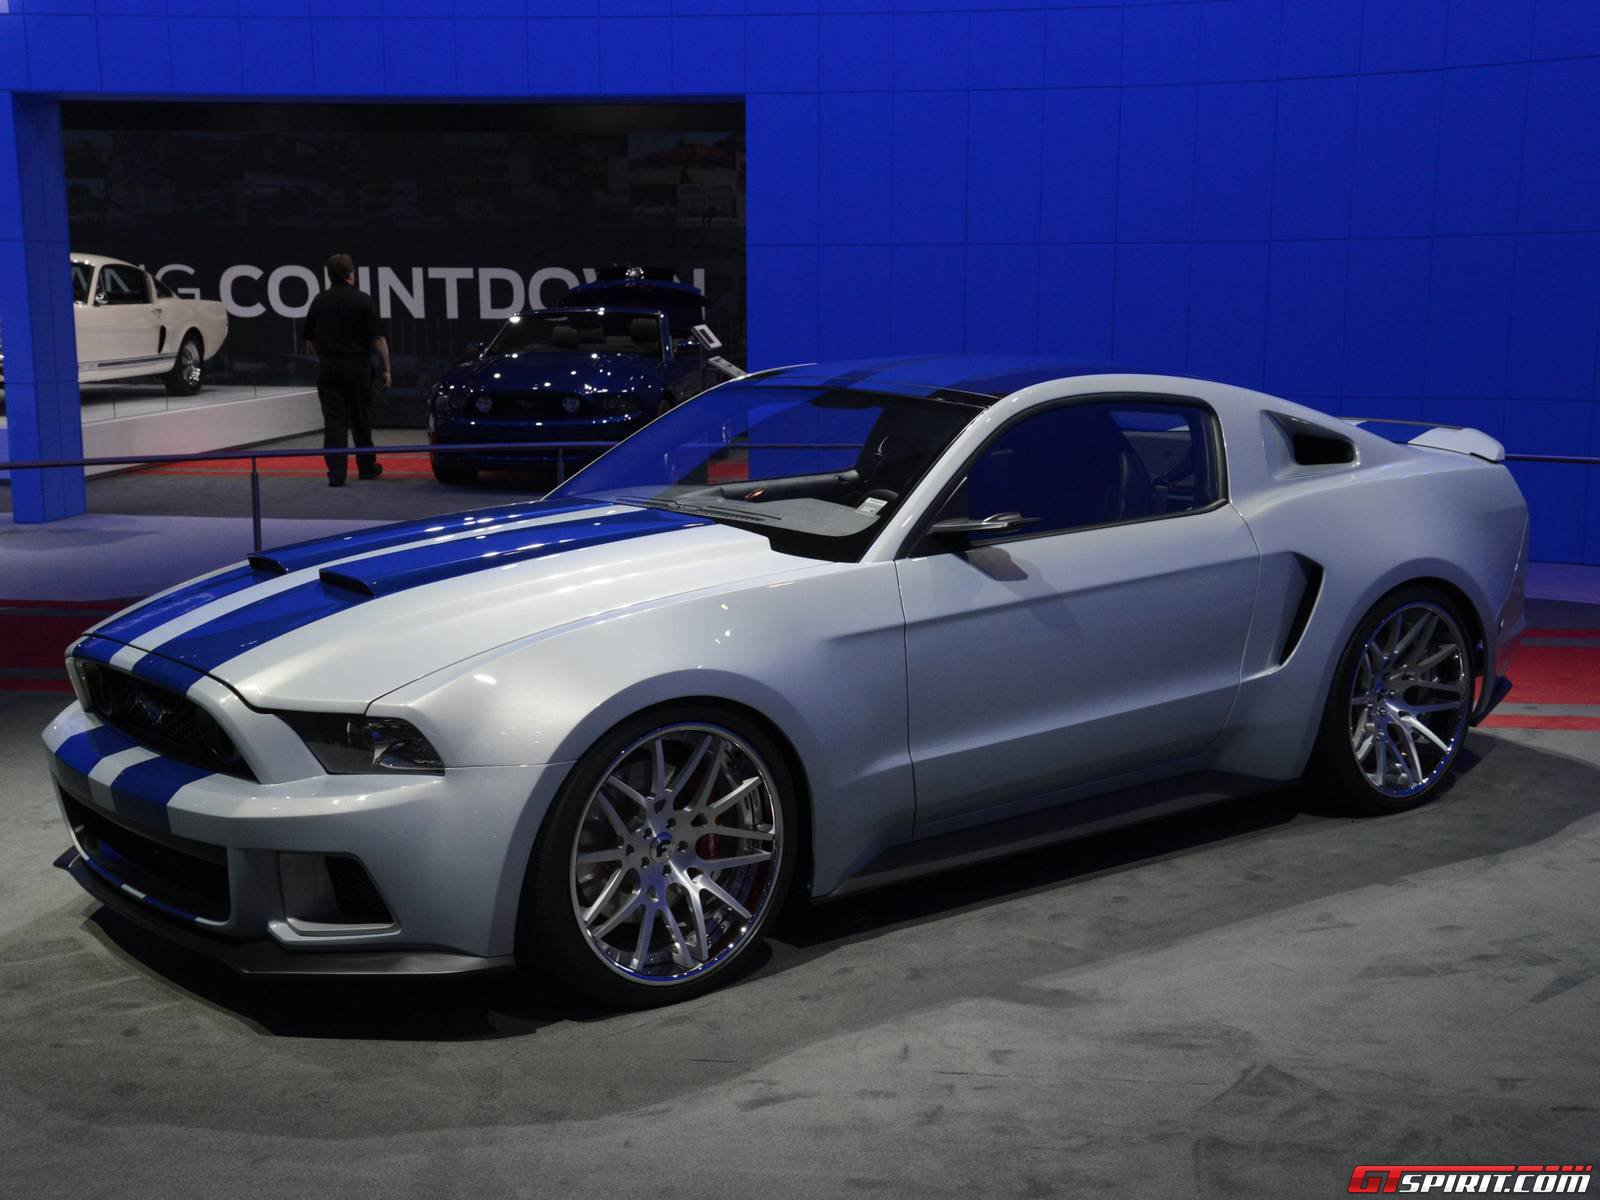 home car news los angeles 2013 need for speed ford mustang. Black Bedroom Furniture Sets. Home Design Ideas